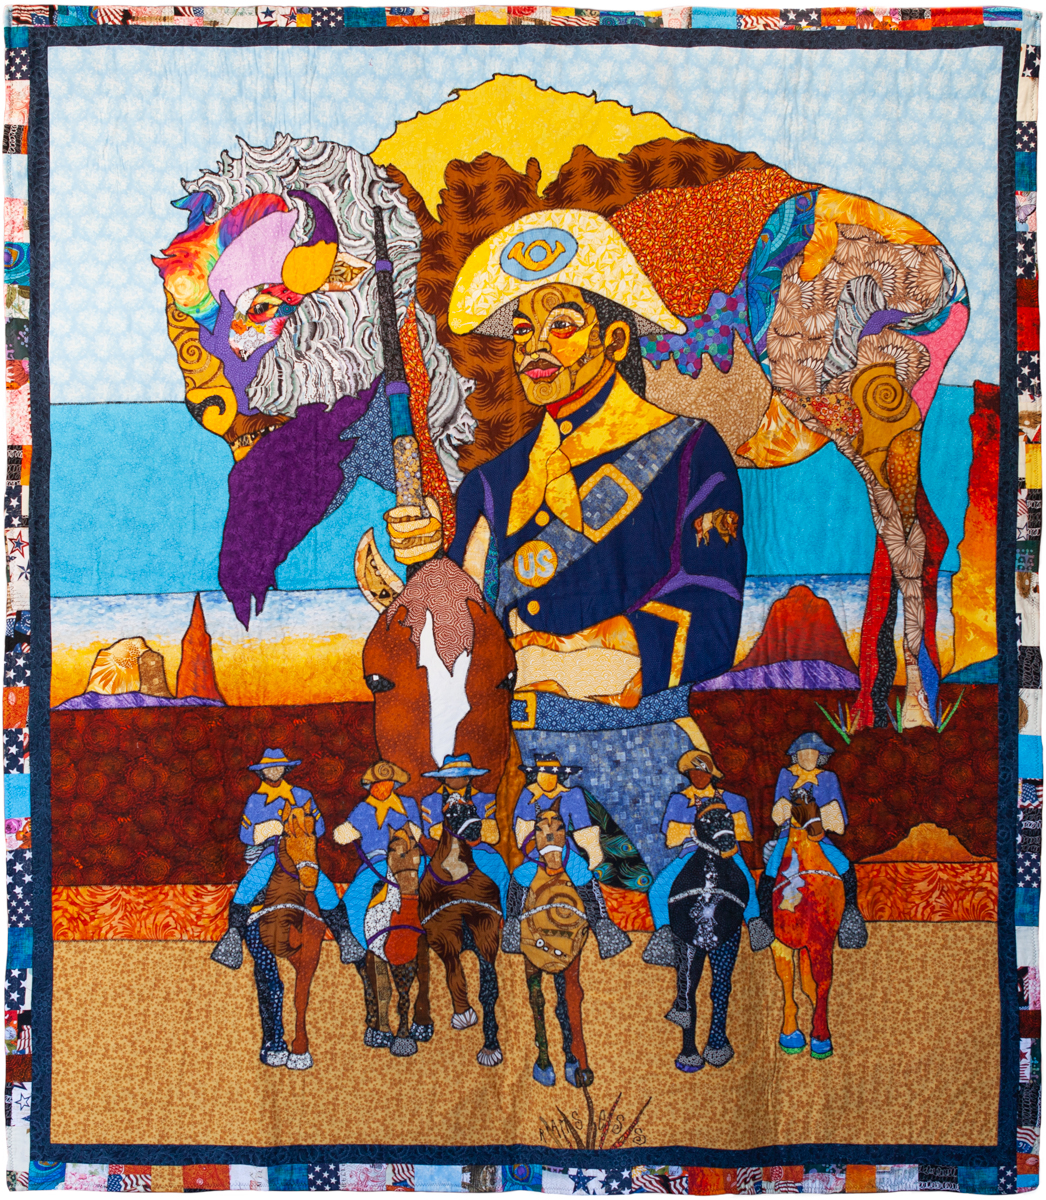 Ramsess, Cathay Williams, Buffalo Soldier, 2016. Fabric. 60 x 70 inches. Photo by Natalie Hon. Courtesy of the artist.